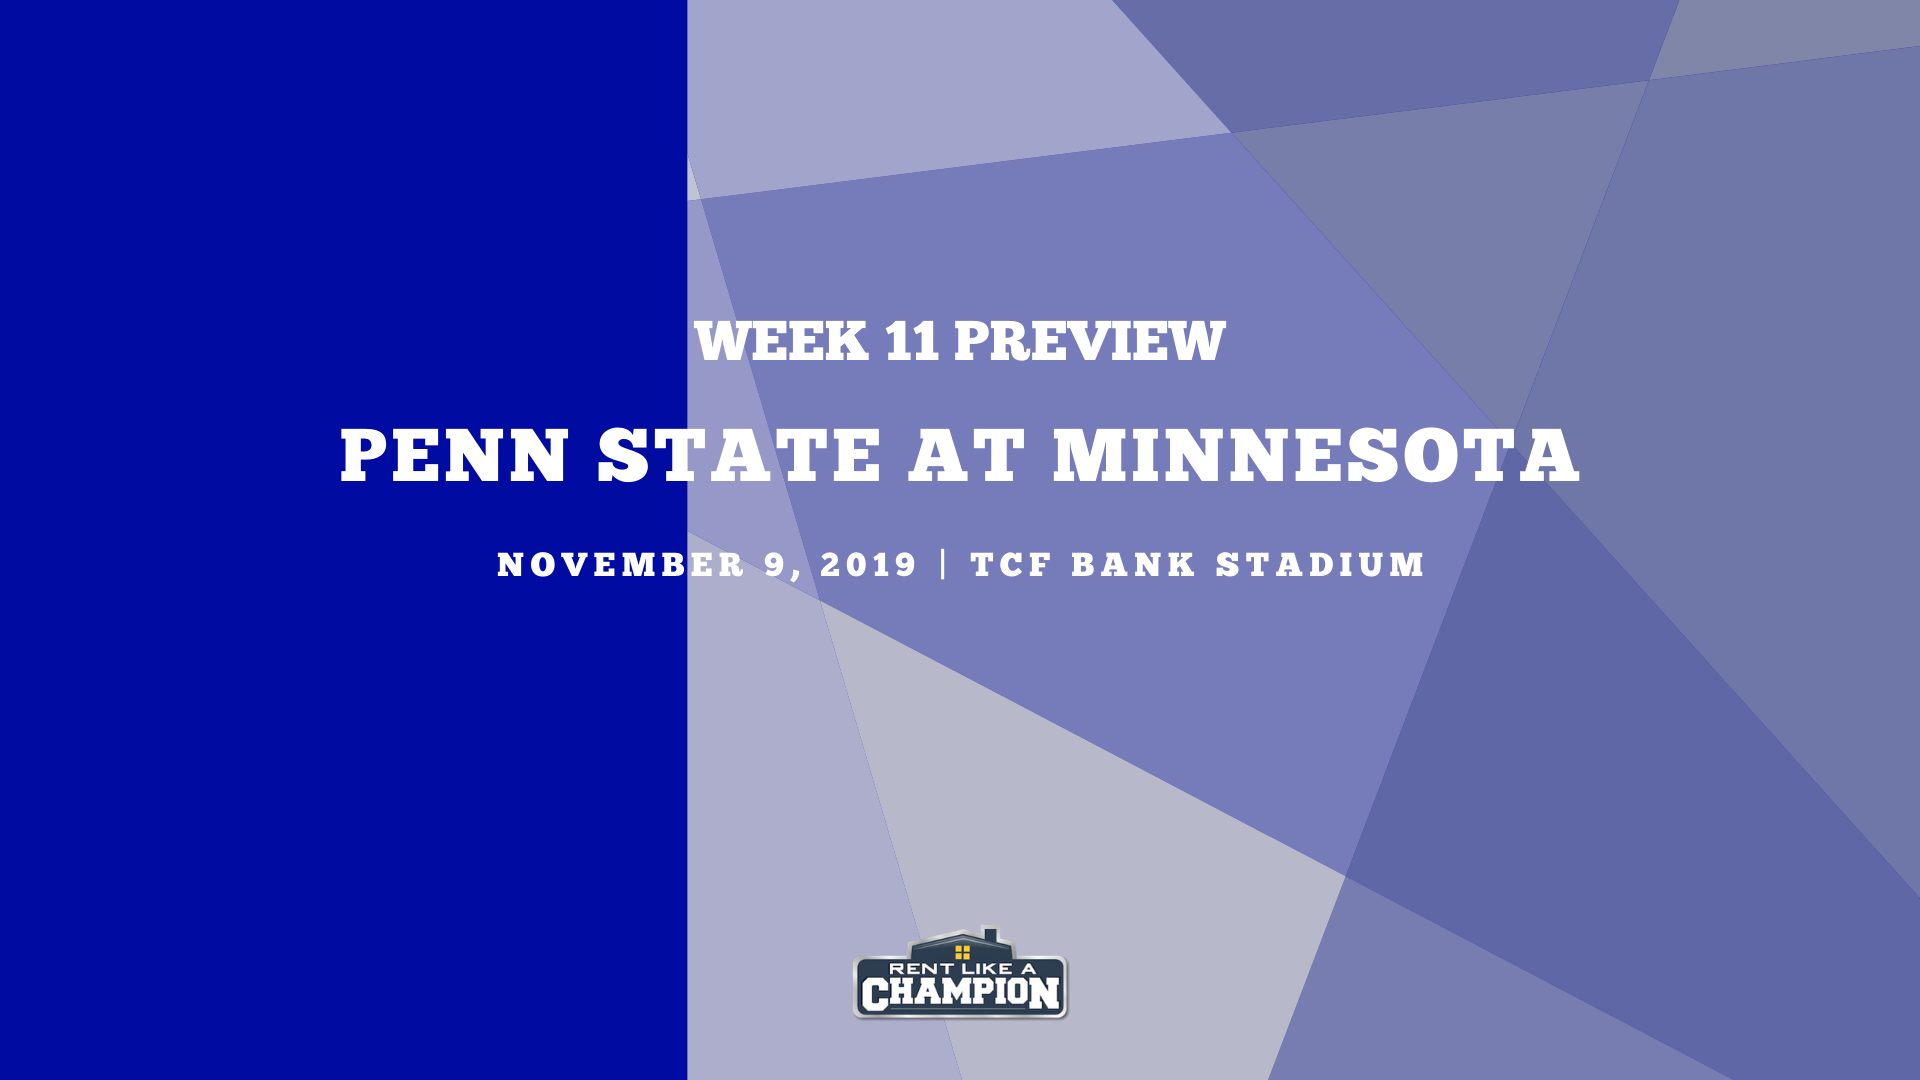 Penn State at Minnesota: Preview, keys to the game, and predictions